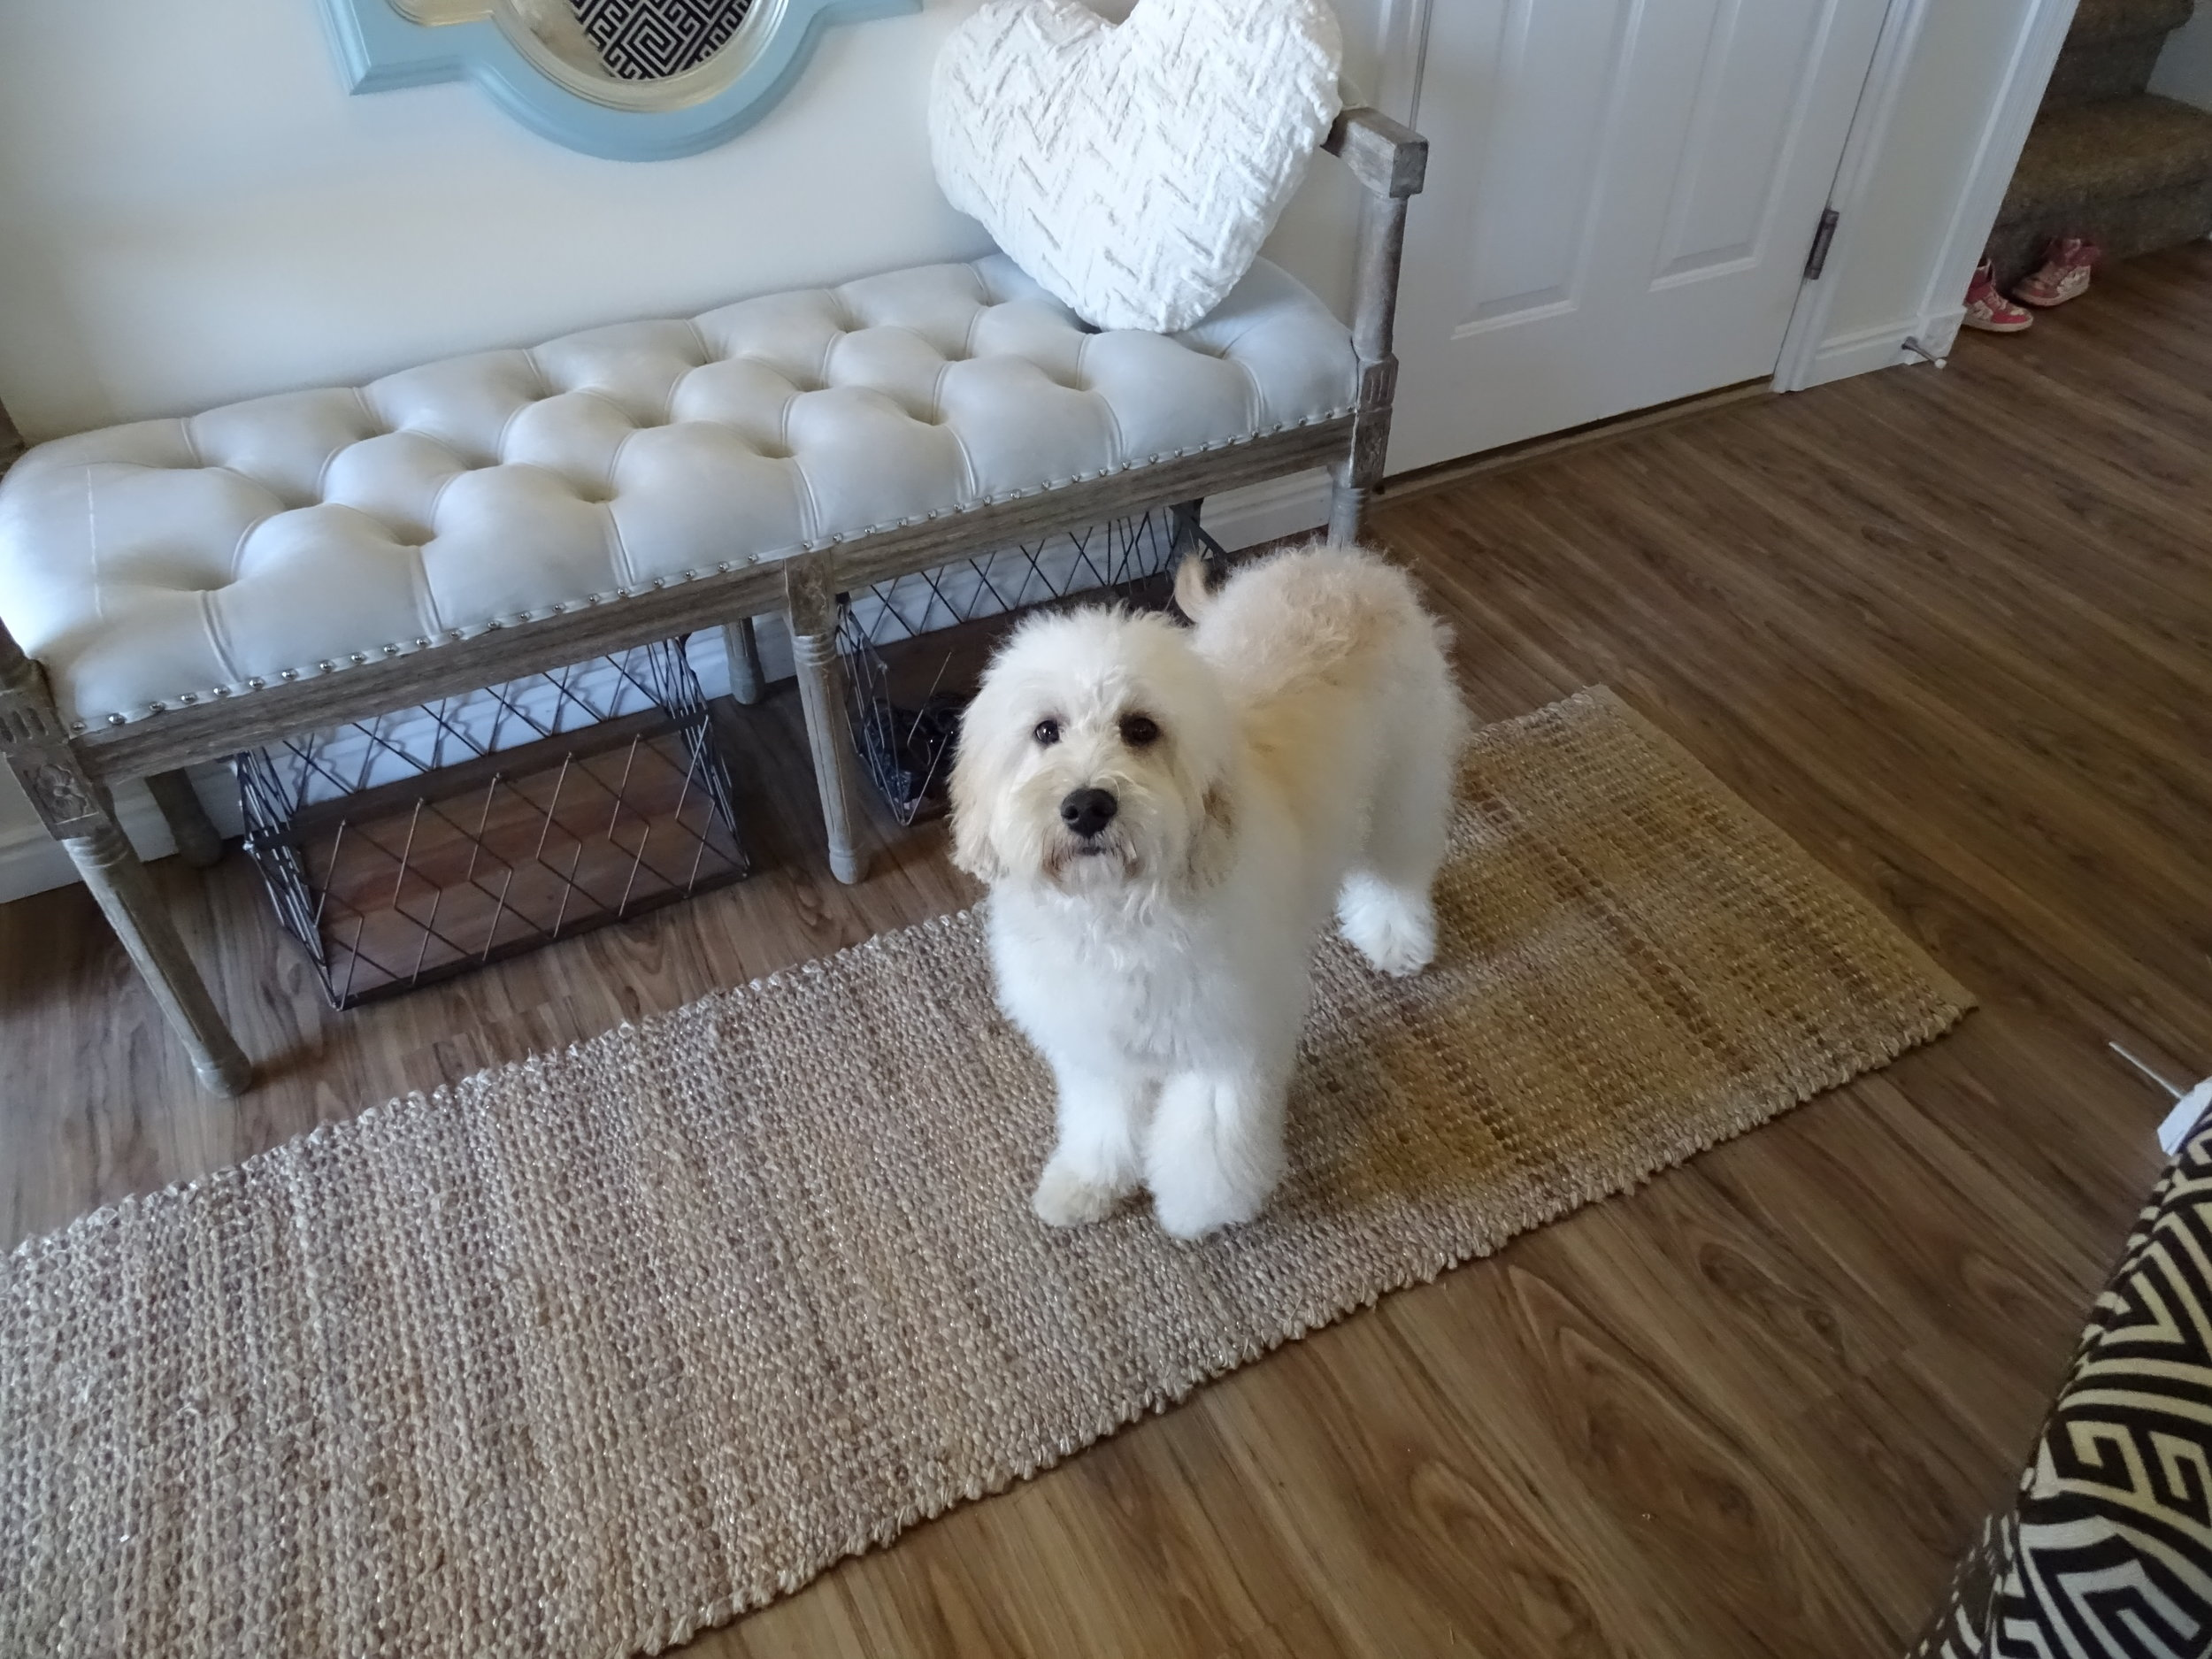 Here is Nala with her fluffy blowdried coat! -